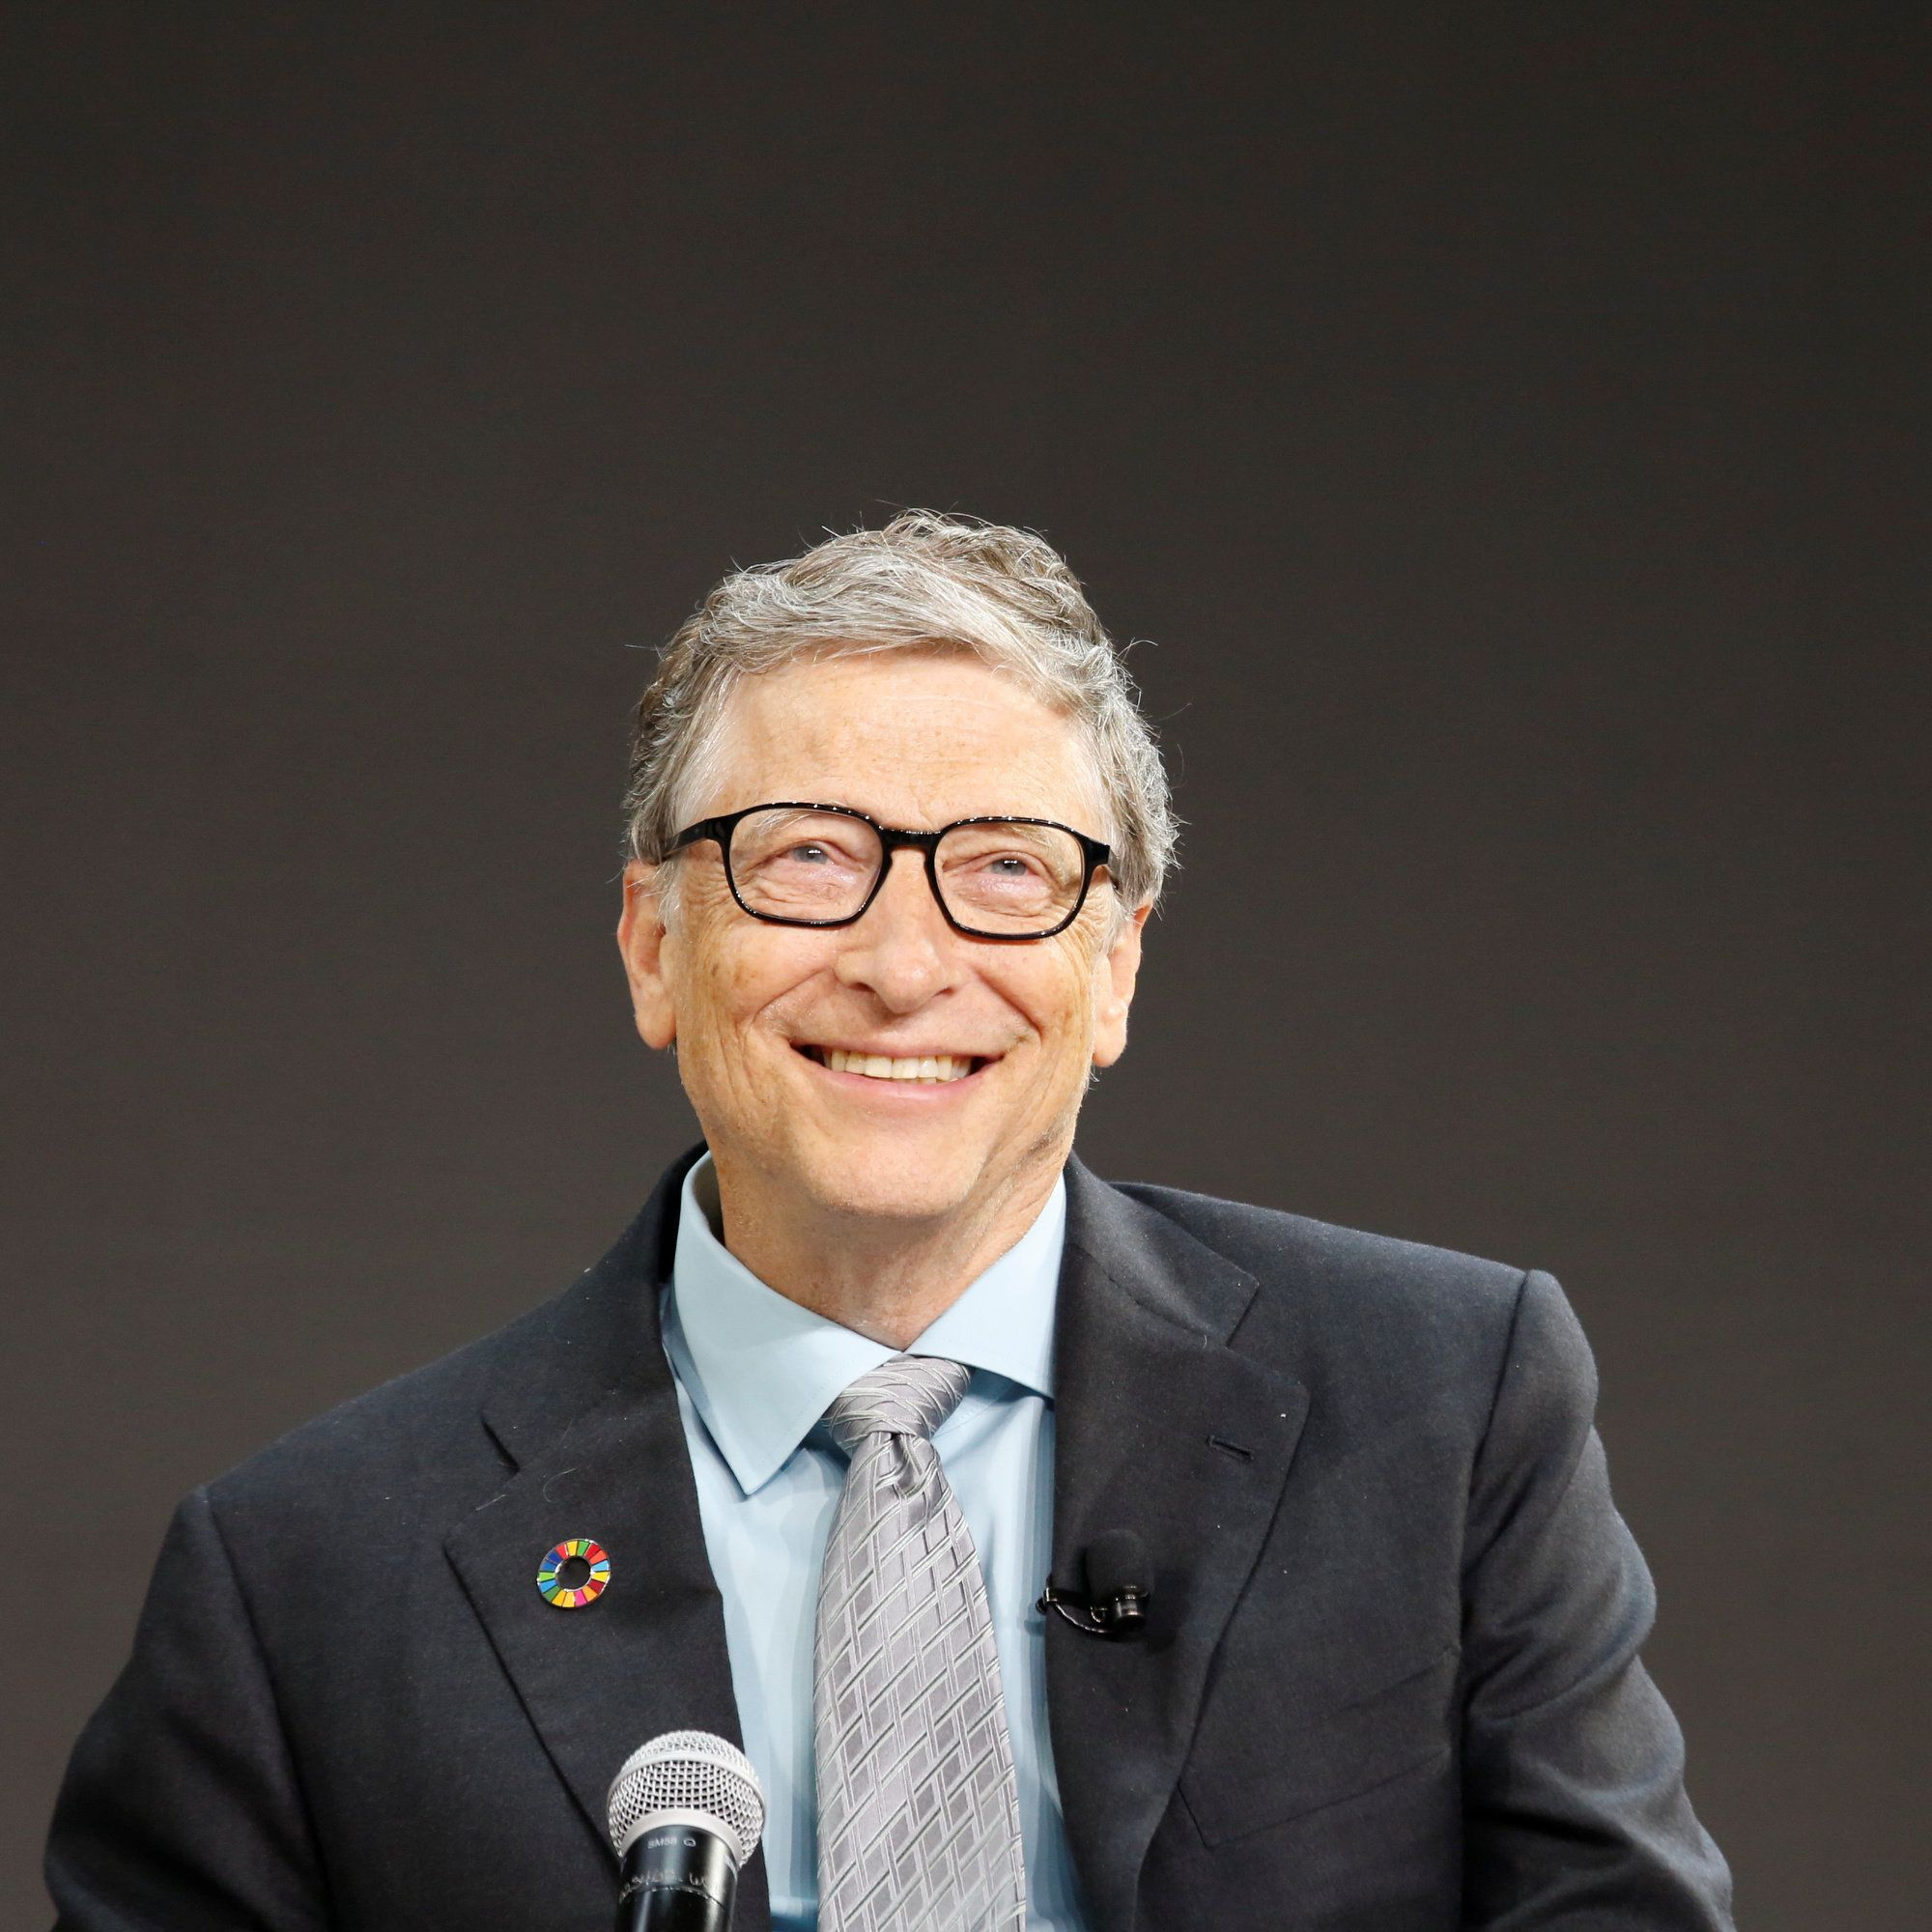 Bill Gates attends the Bill & Melinda Gates Foundation Goalkeepers event in Manhattan, New York, U.S., September 20, 2017. REUTERS/Elizabeth Shafiroff